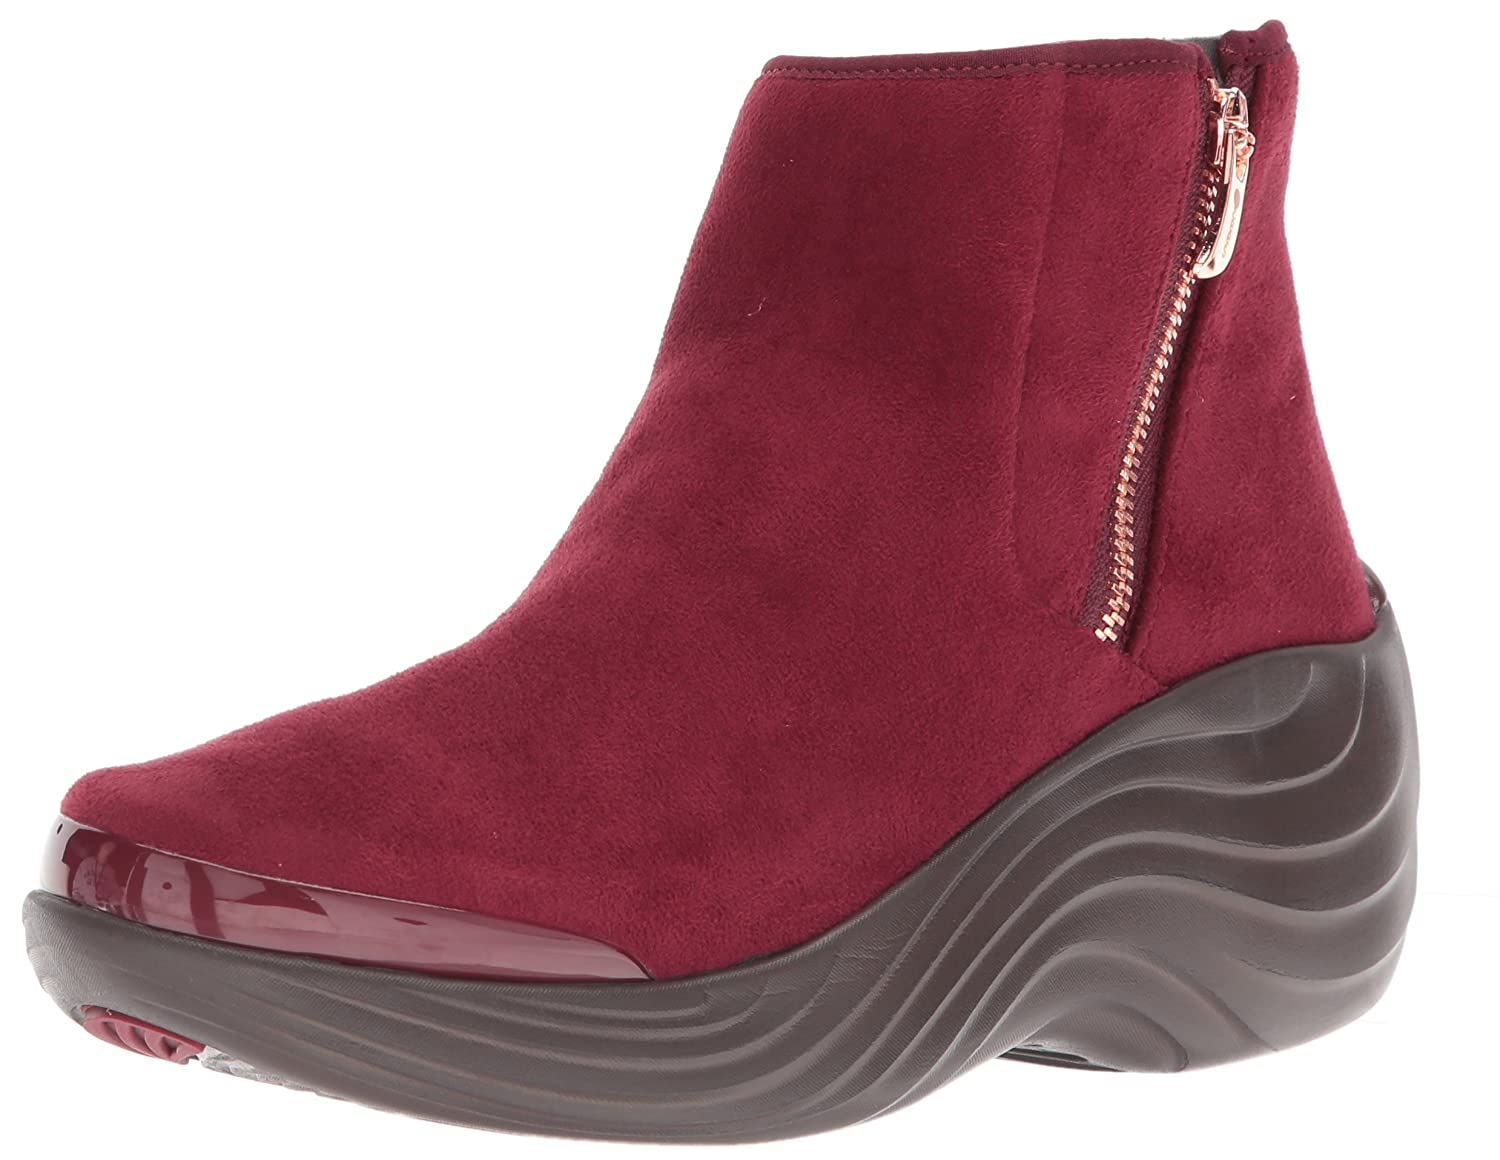 BZees Women's Zora Ankle Boot B076BZH51D 5.5 B(M) US|Wine